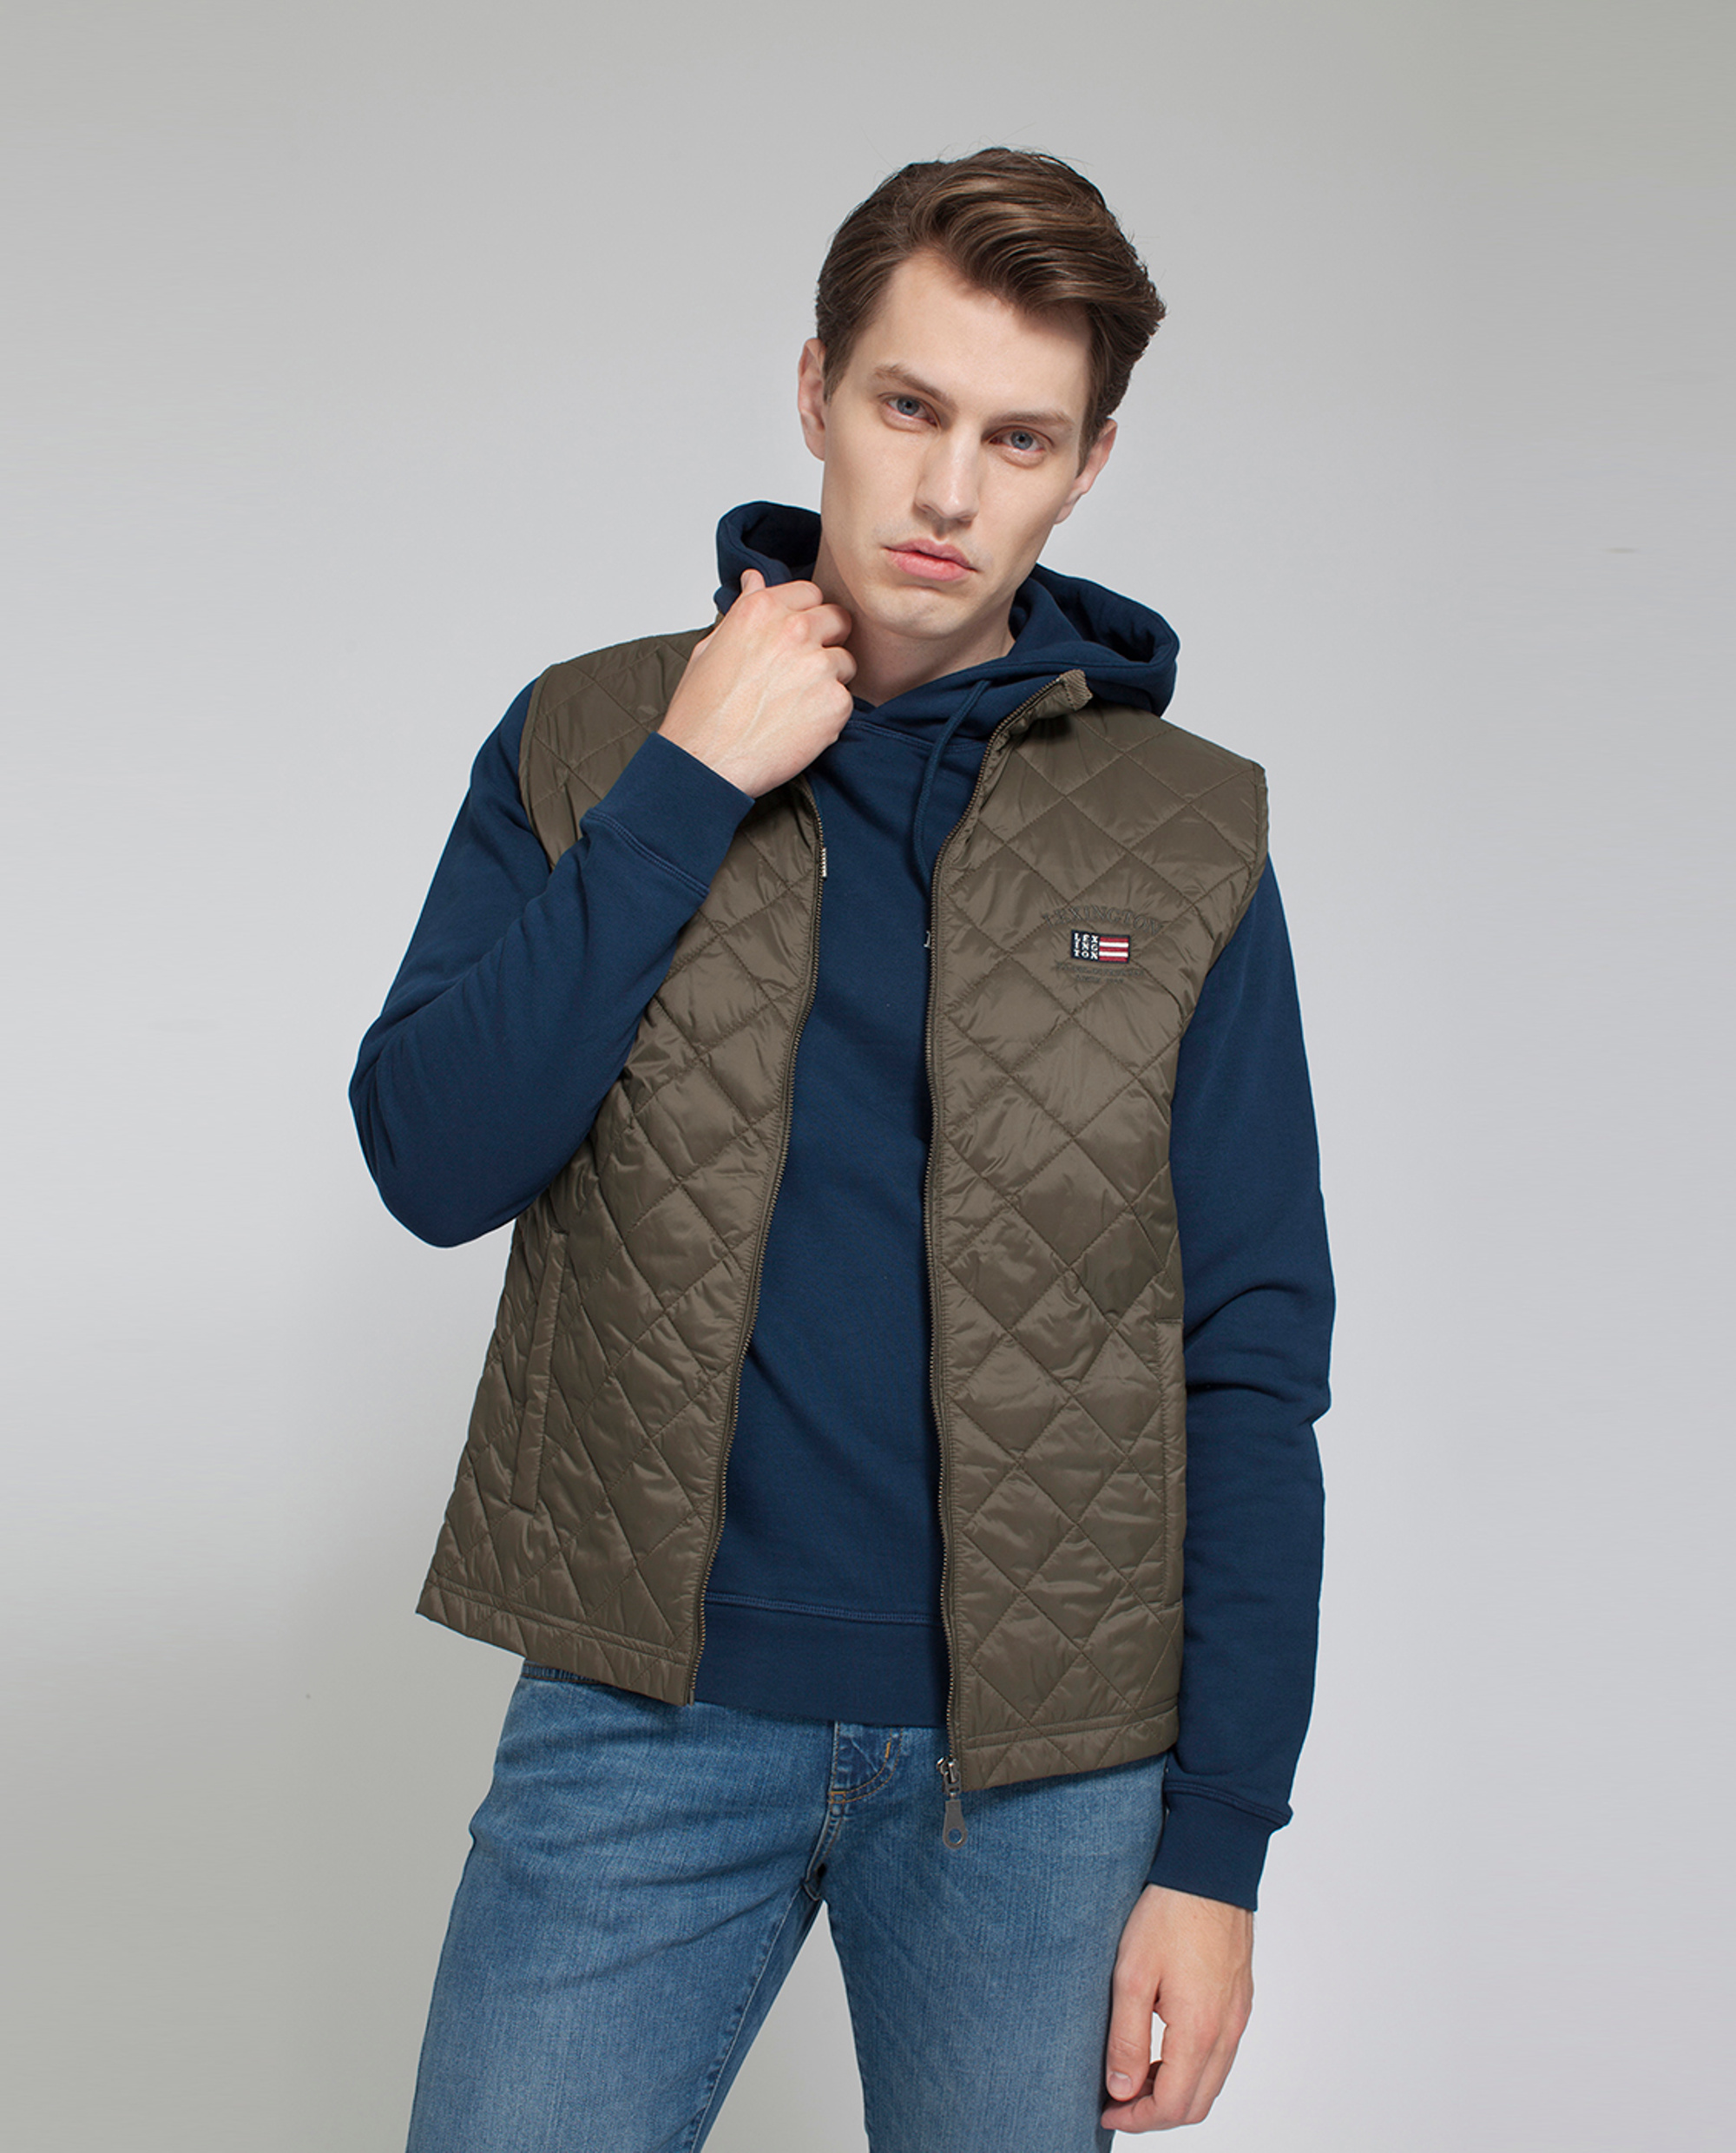 j quilted in vest getaway green product lyst crew excursion quilt gallery clothing jcrew